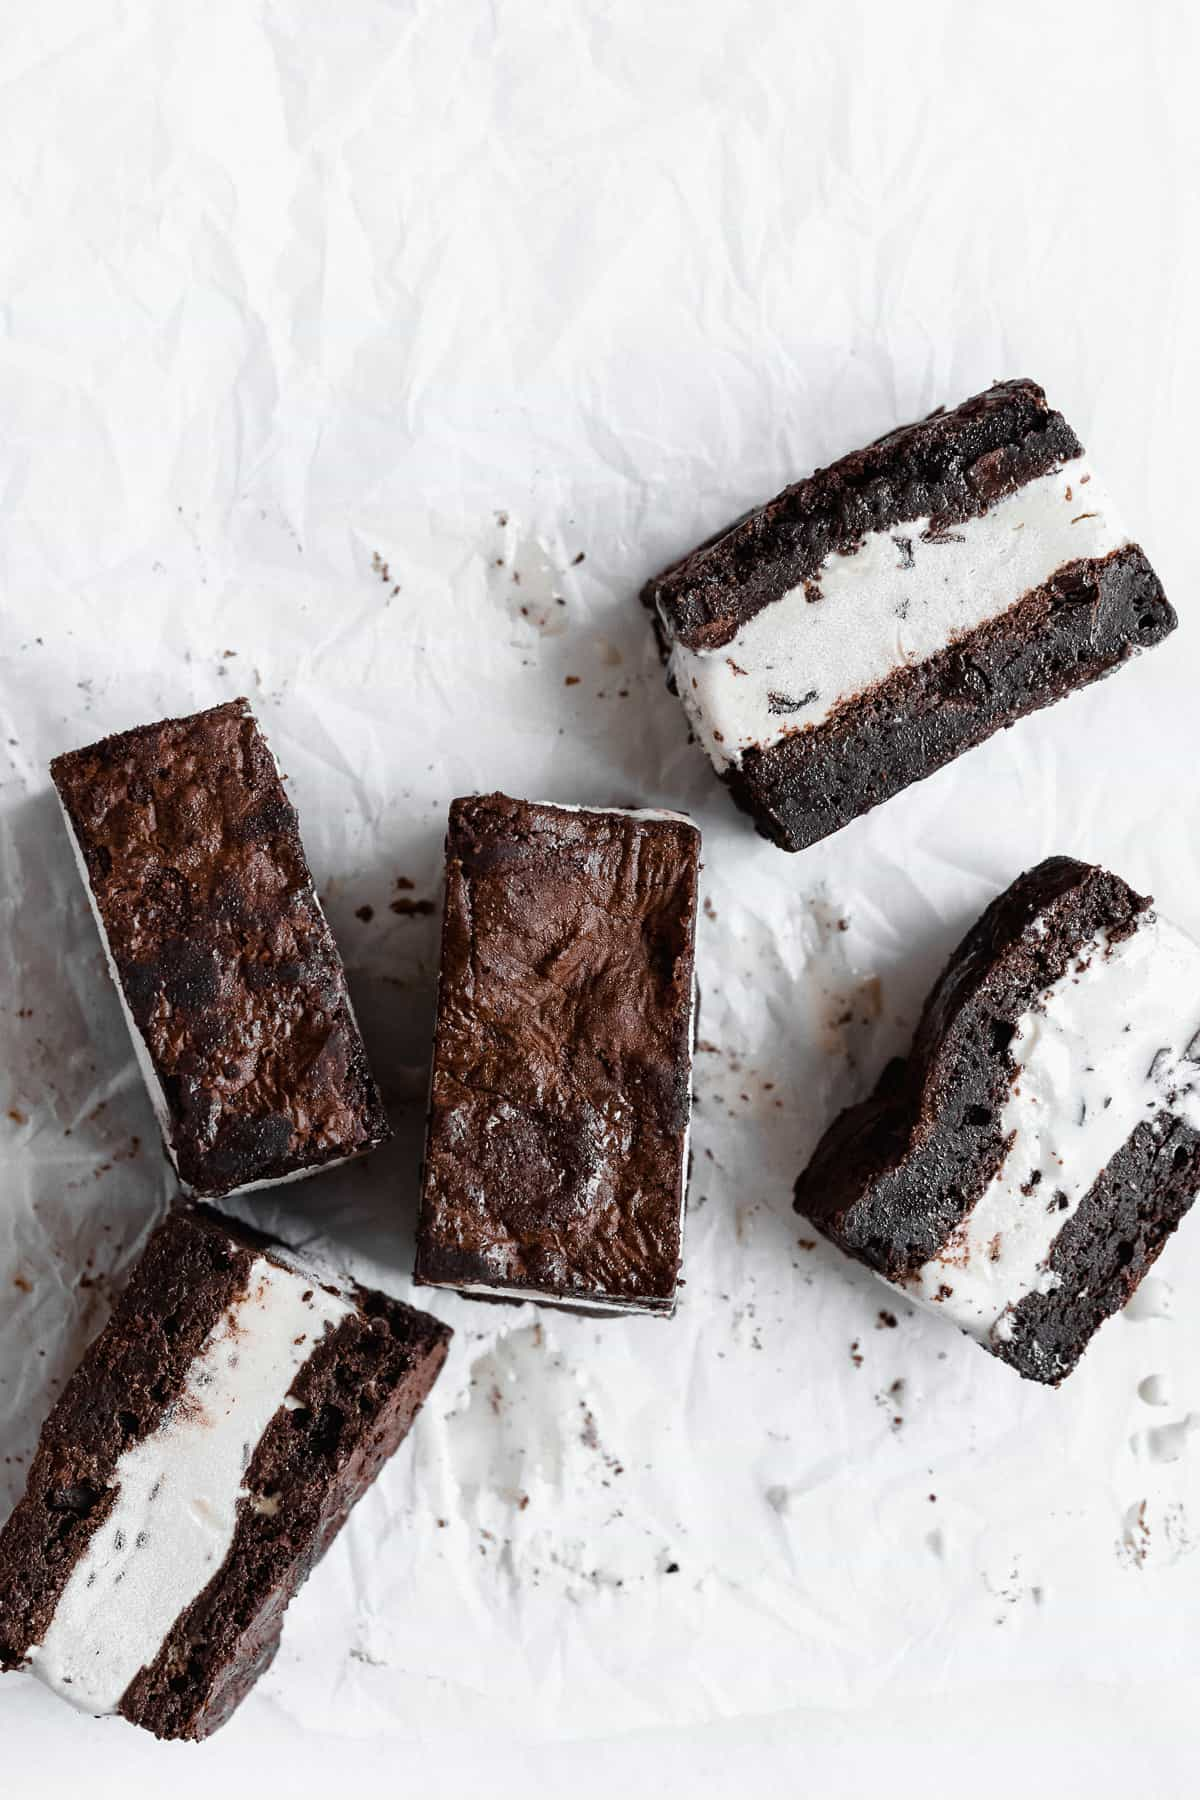 Several Brownie Ice Cream Sandwich squares arranged in white parchment paper.